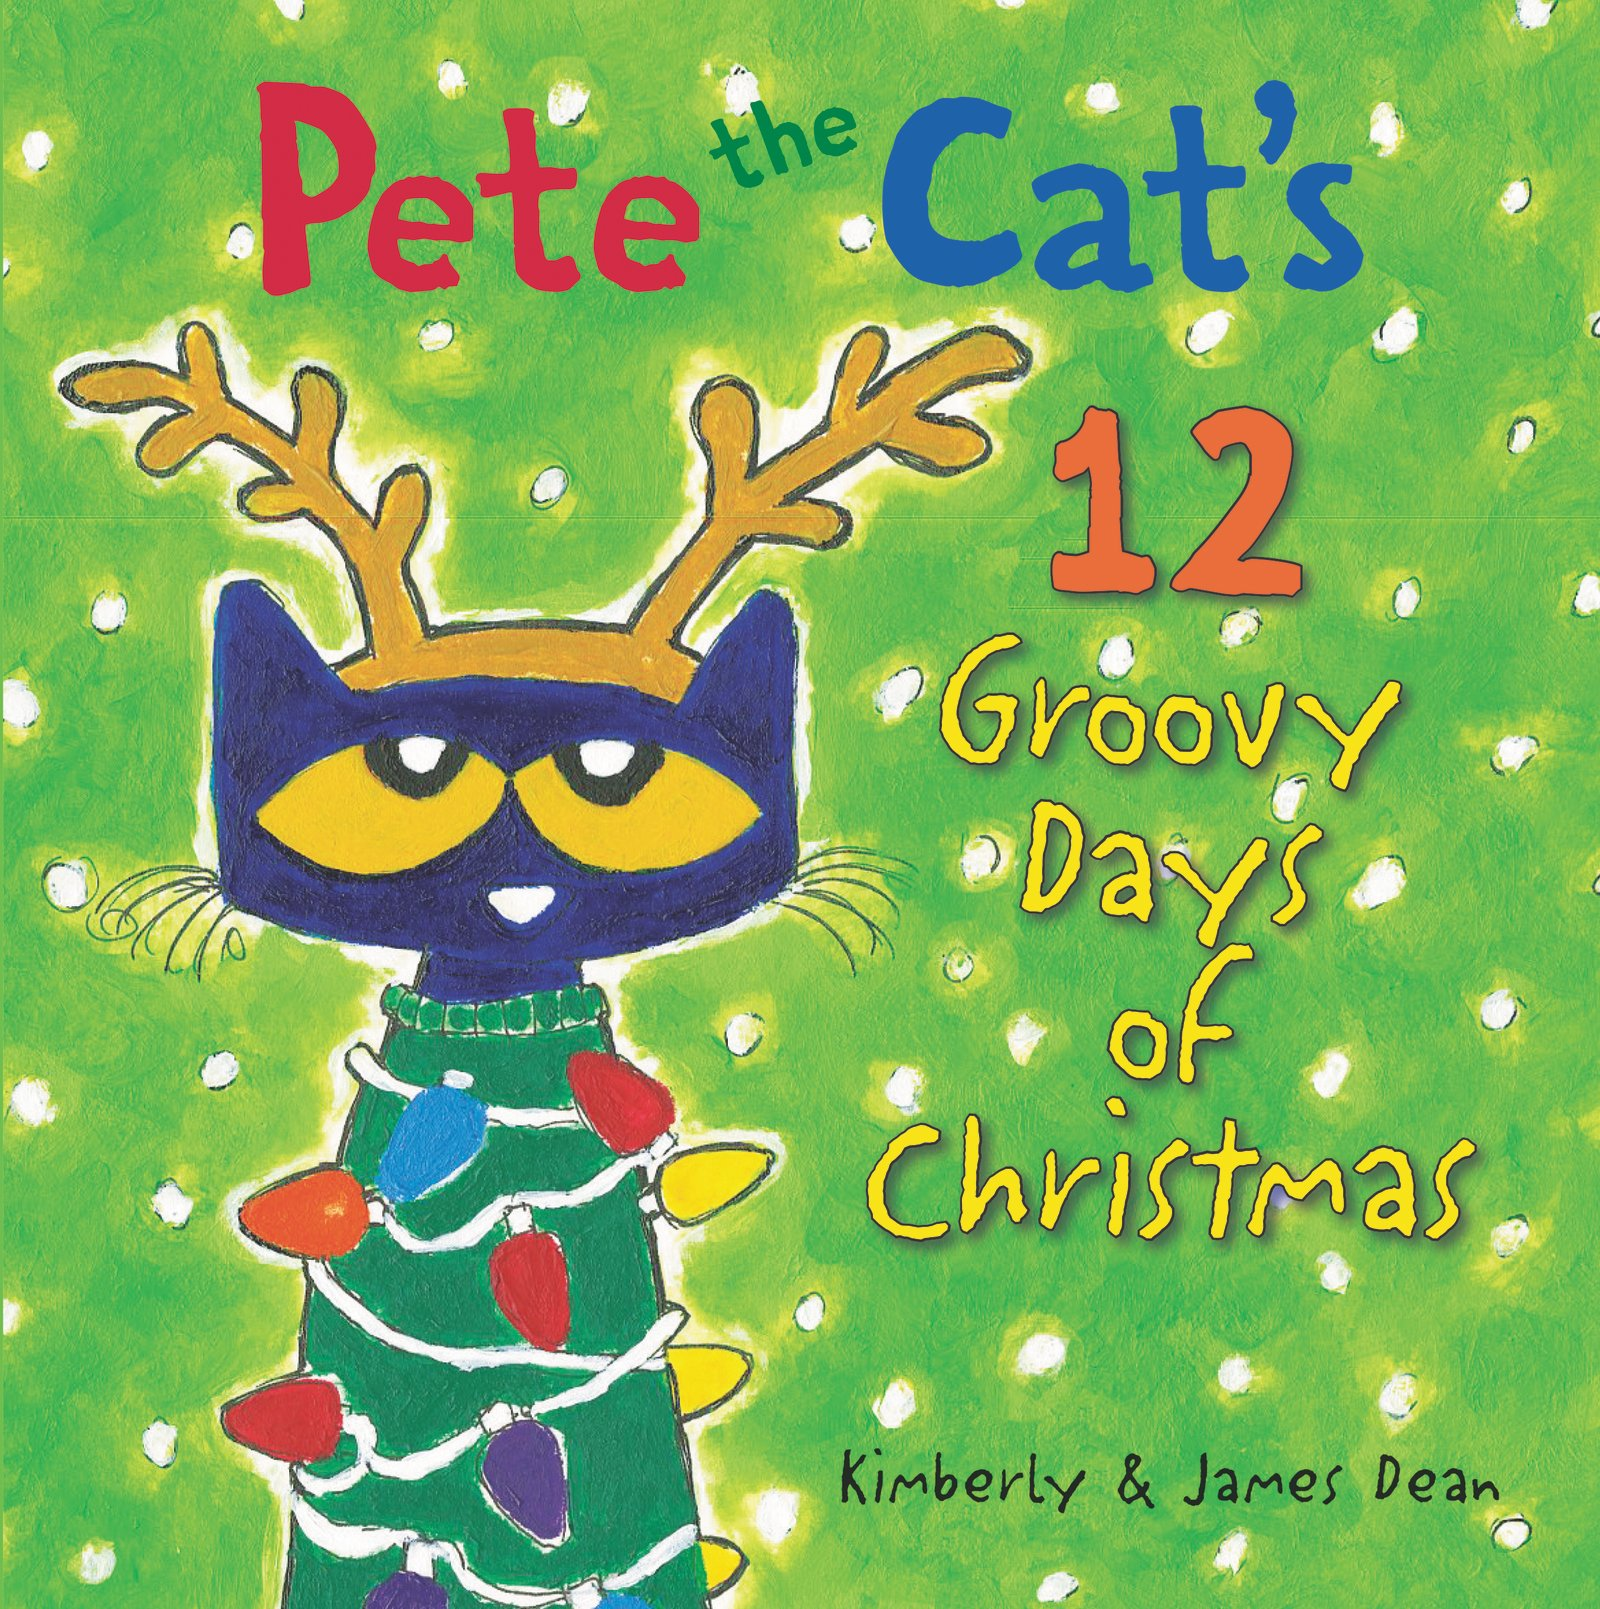 Pete Cats Groovy Days Christmas